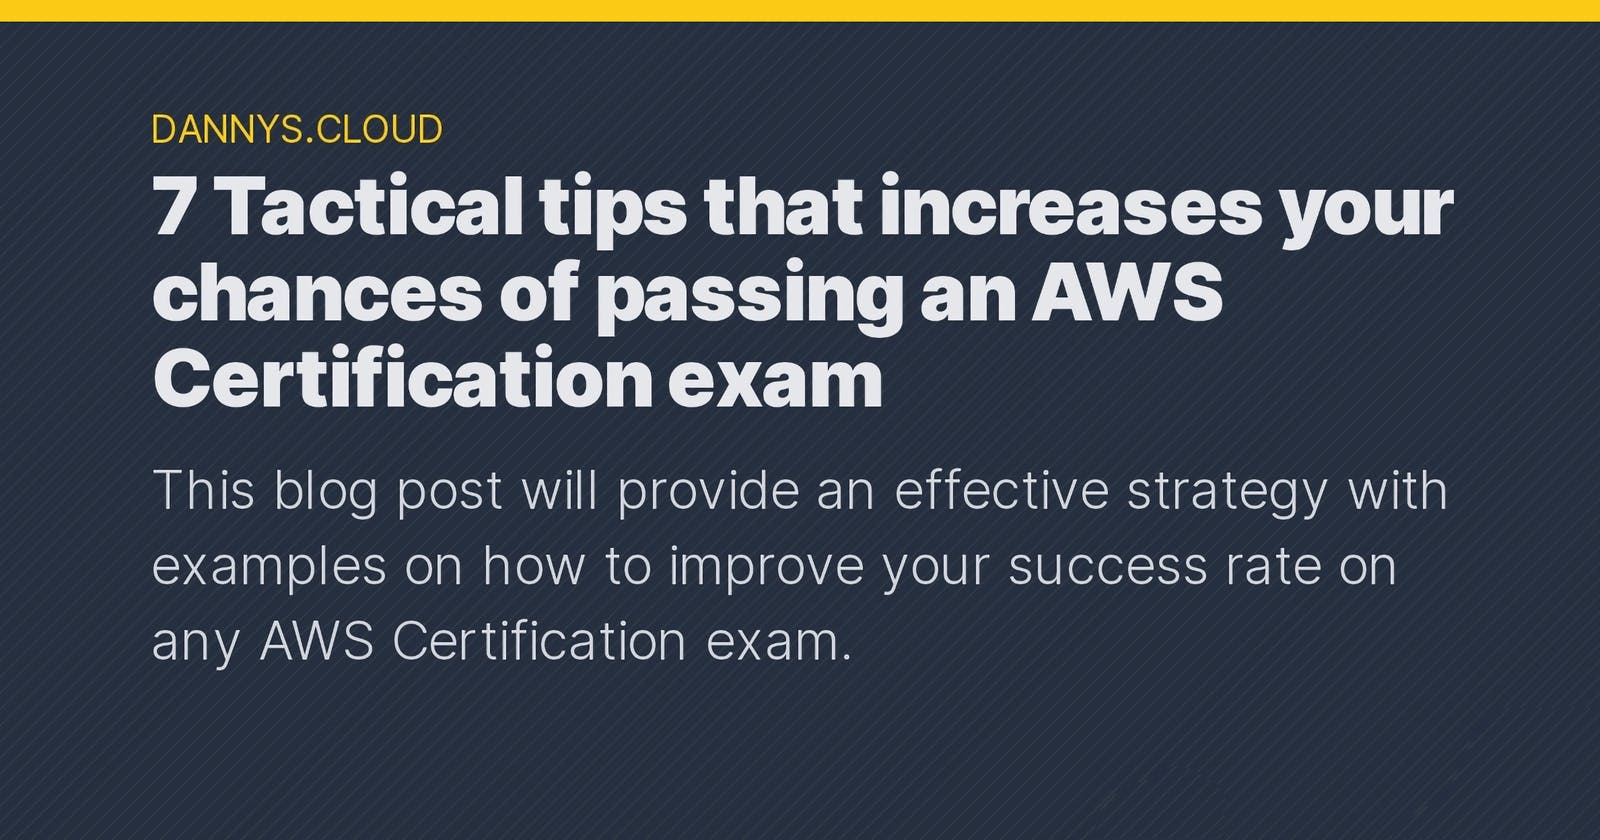 7 Tactical tips that increases your chances of passing an AWS Certification exam